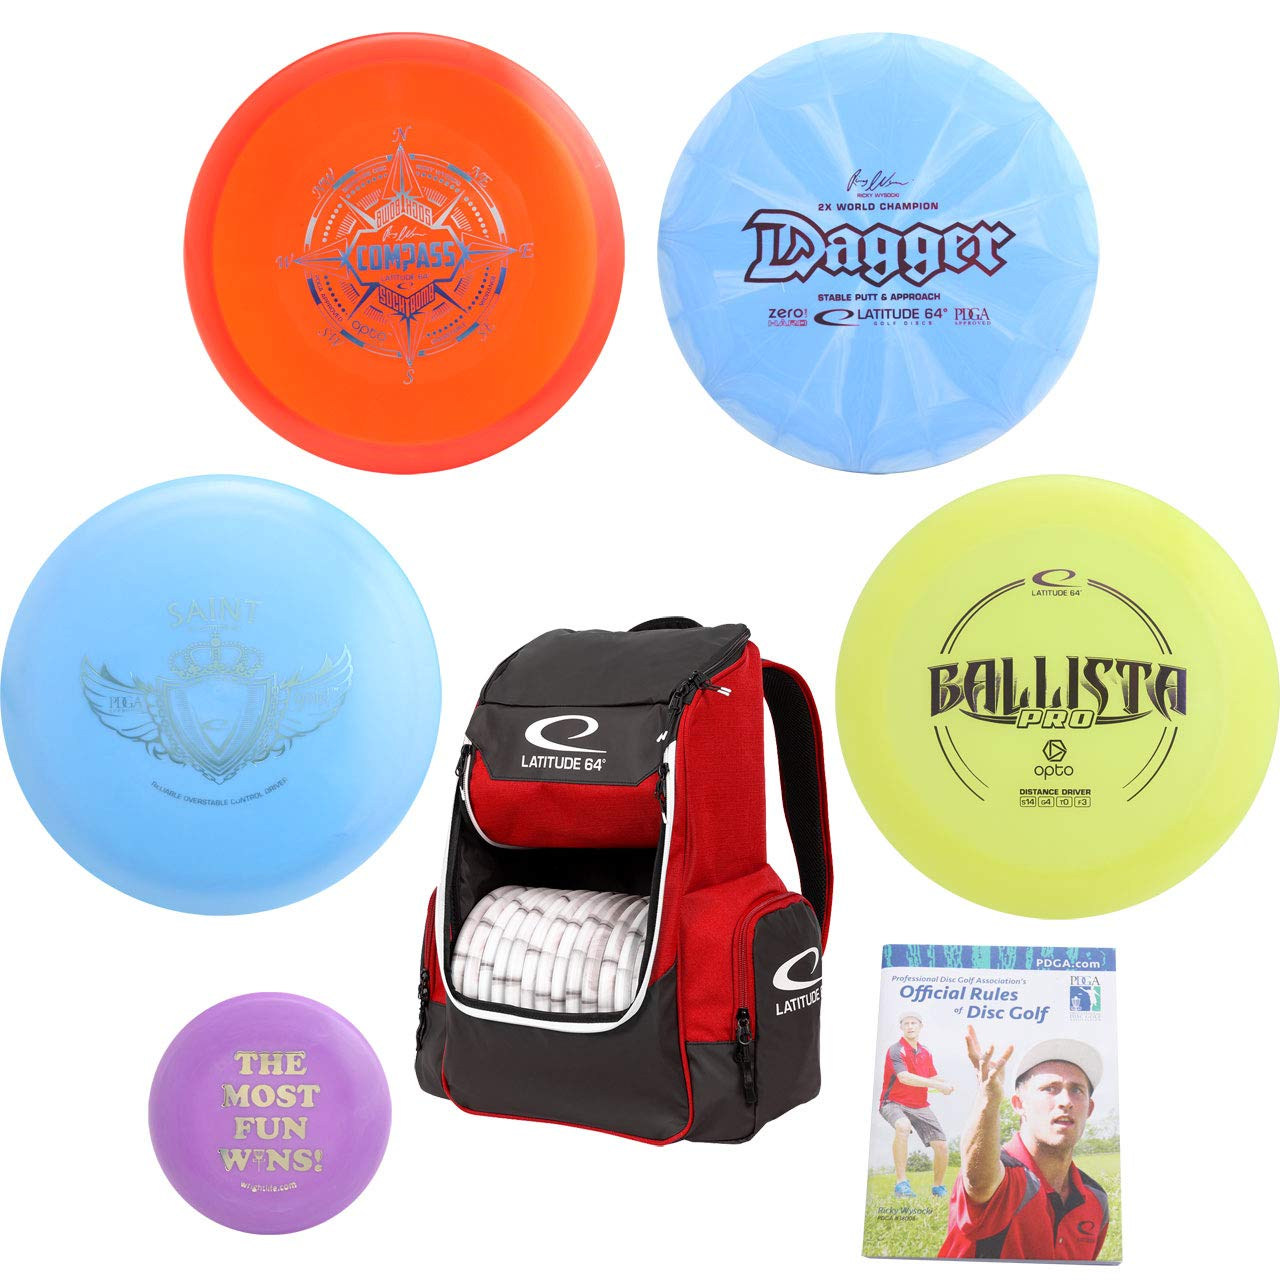 Latitude 64° Complete Disc Golf Gift Set - Core Backpack Bag + 4 Best Discs, Rules Book and Mini Marker Disc (7 Items, Colors May Vary) (Bag: Black) by Latitude 64